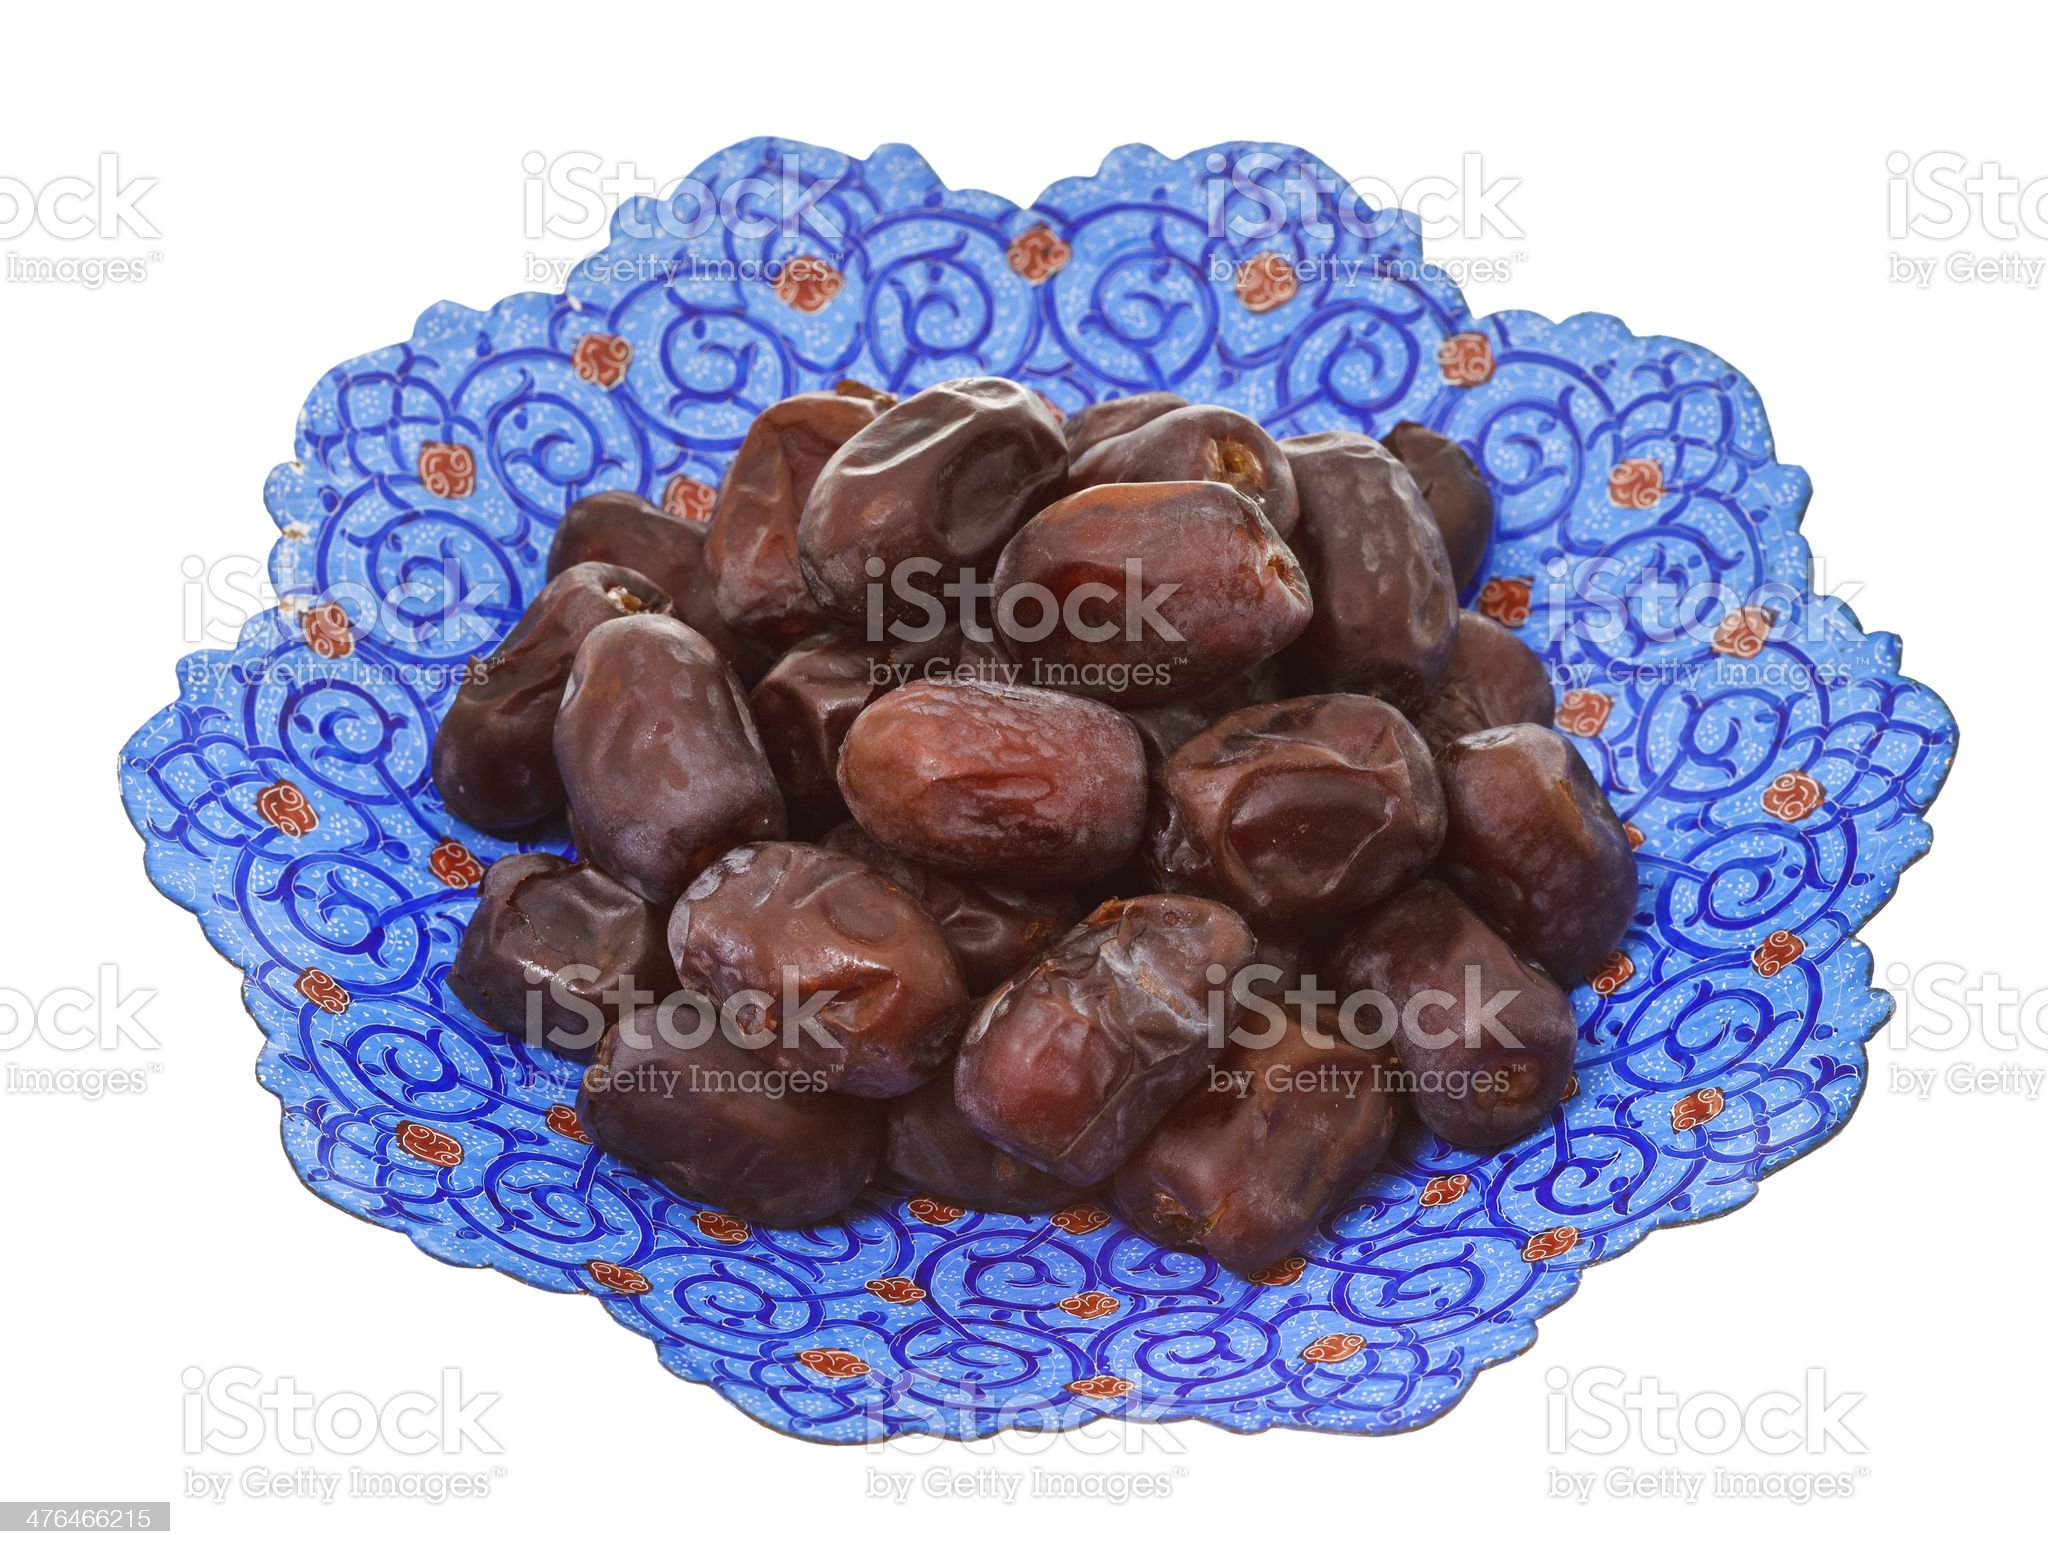 dried dates on iranian plate royalty-free stock photo